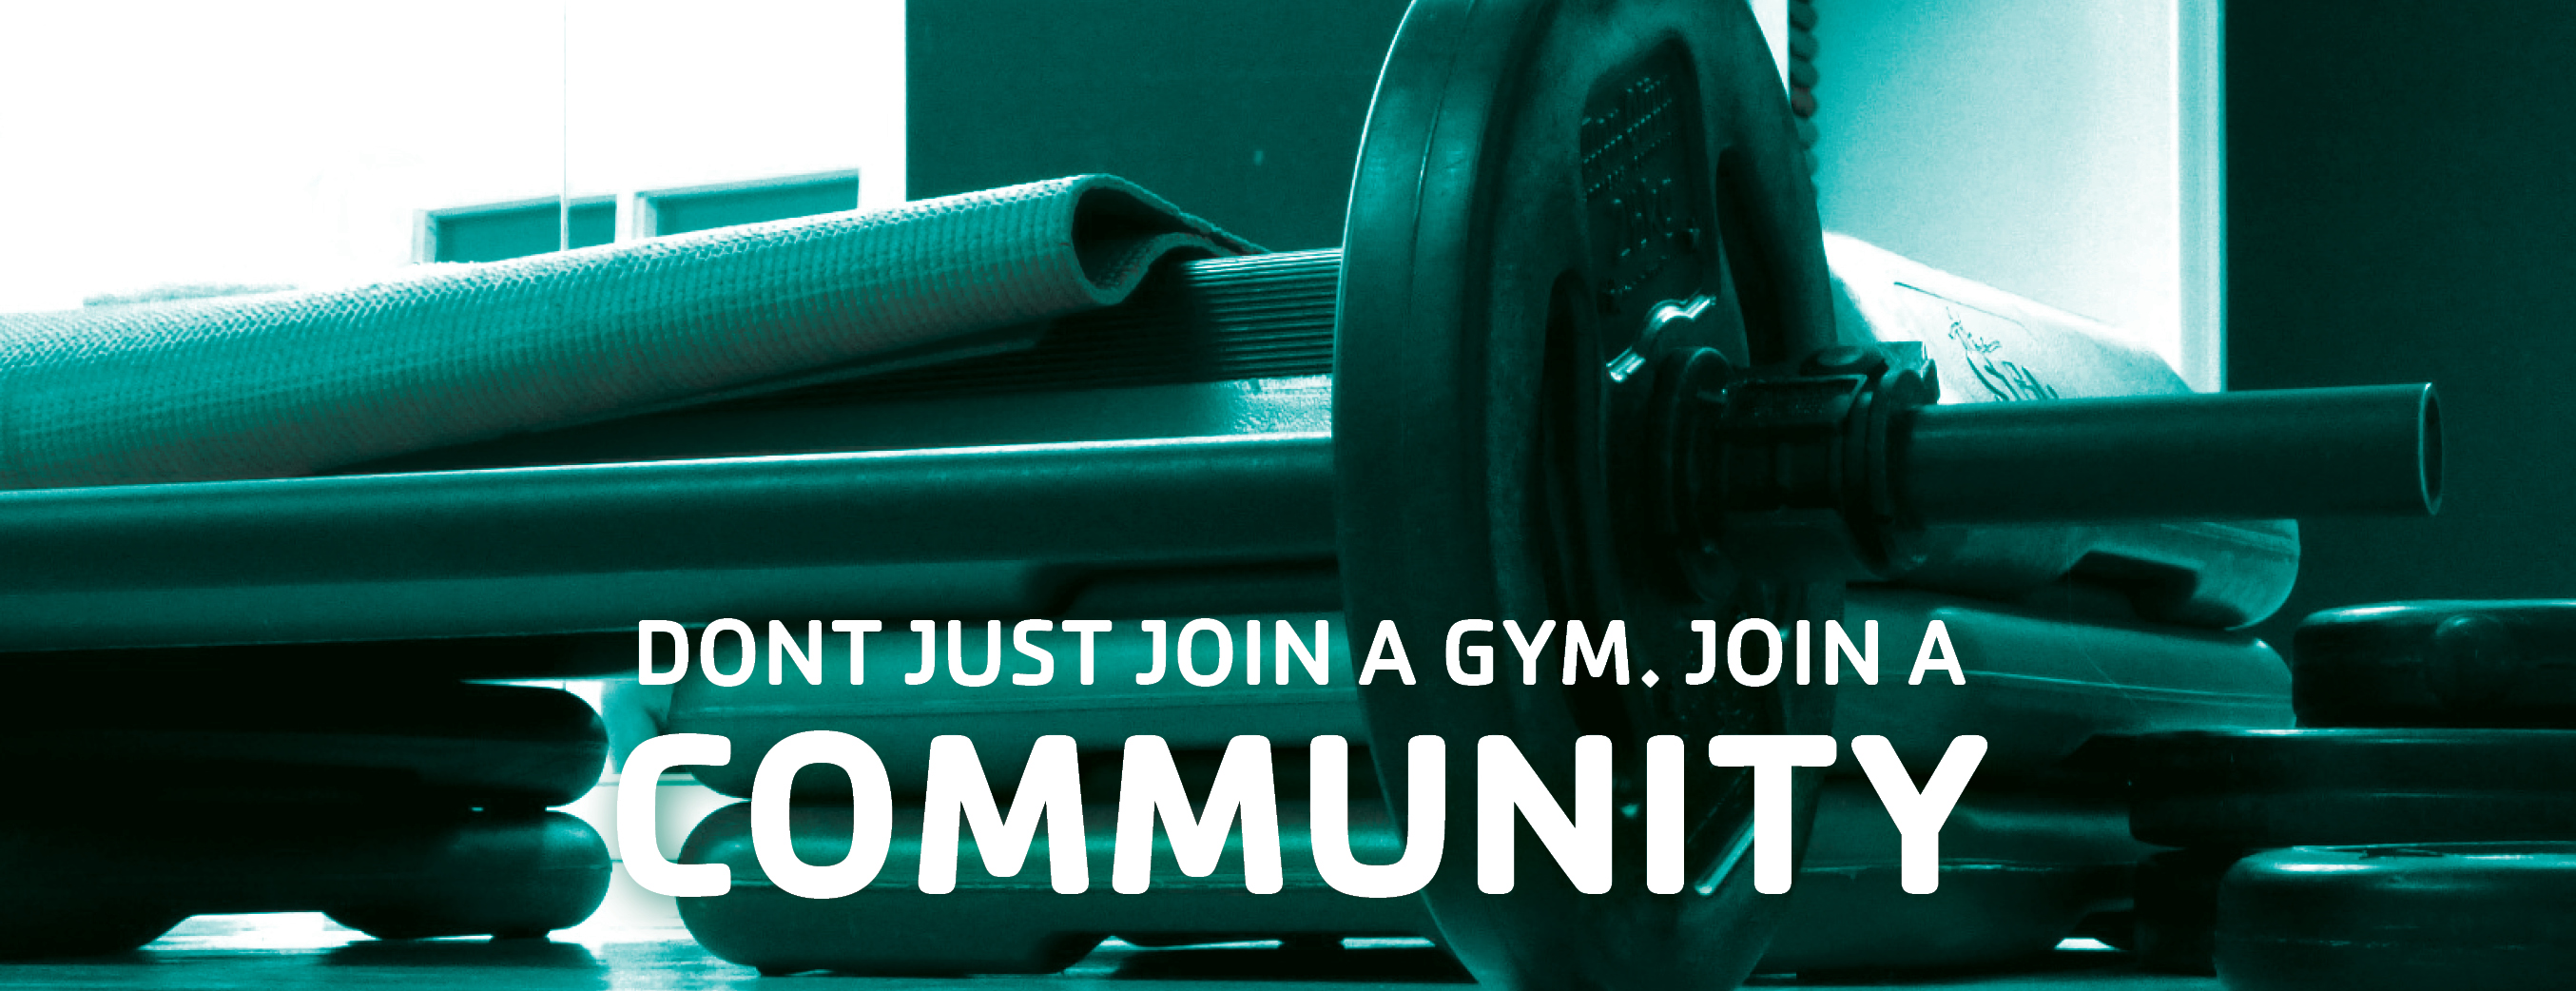 Redlands Y fitness gym room. Don't just join a gym. Join a community.